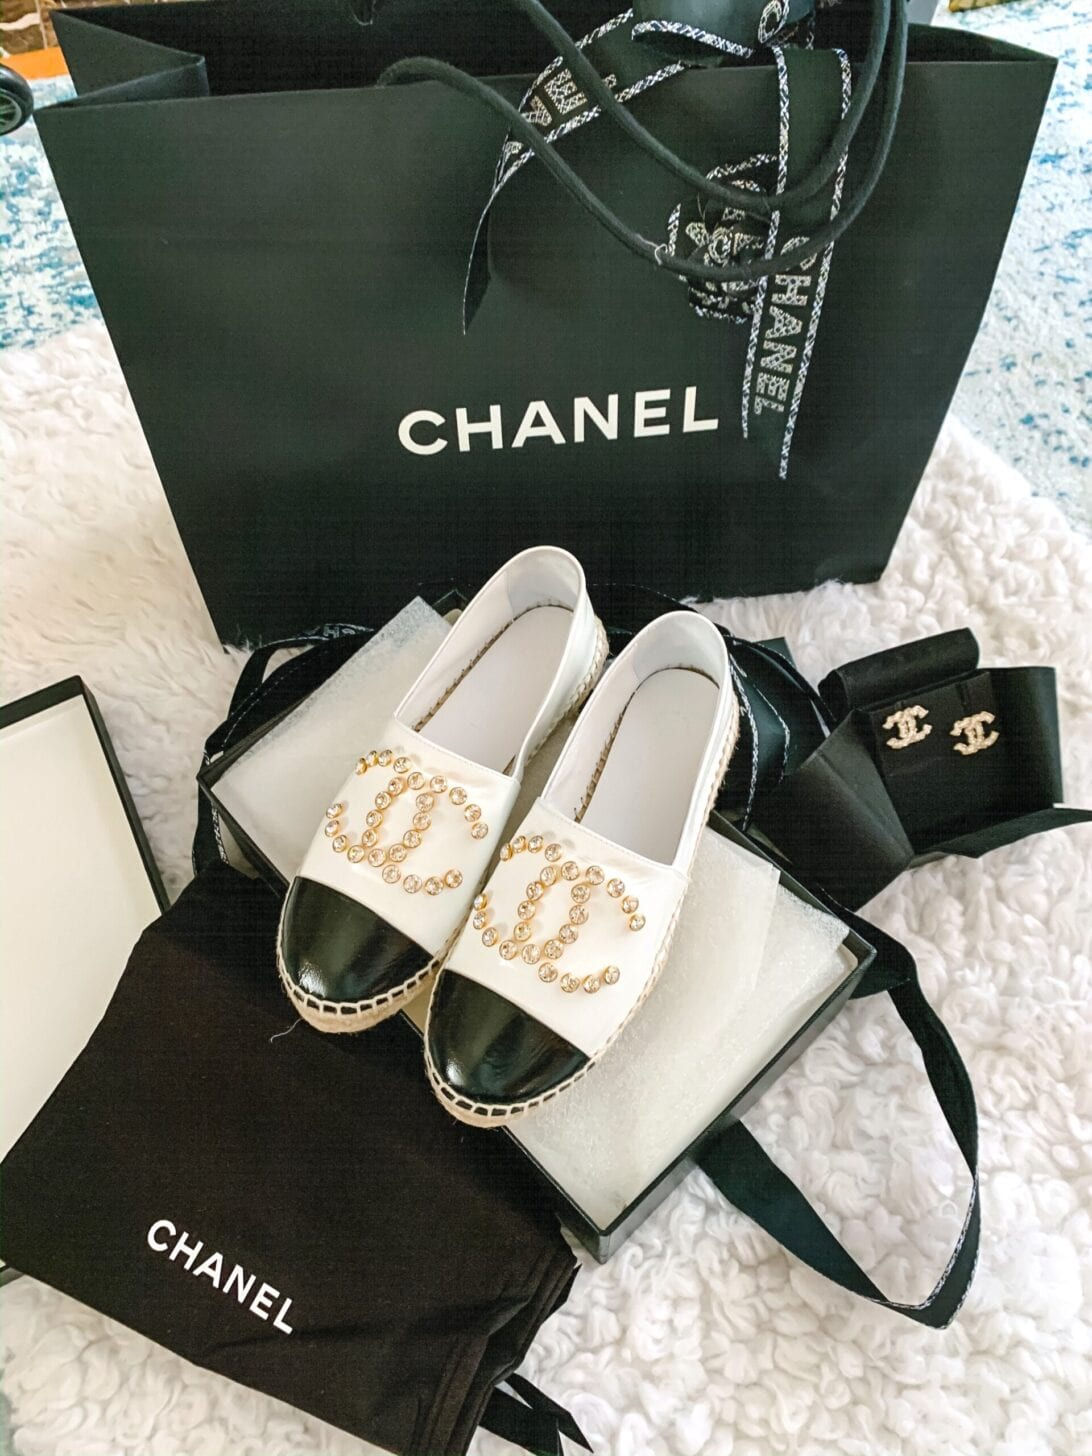 chanel cruise 2020, Chanel espadrilles, black and white calf skin espadrilles, Chanel unboxing, Chanel earrings, Chanel bag, Chanel shoes, bling chanel espadrilles